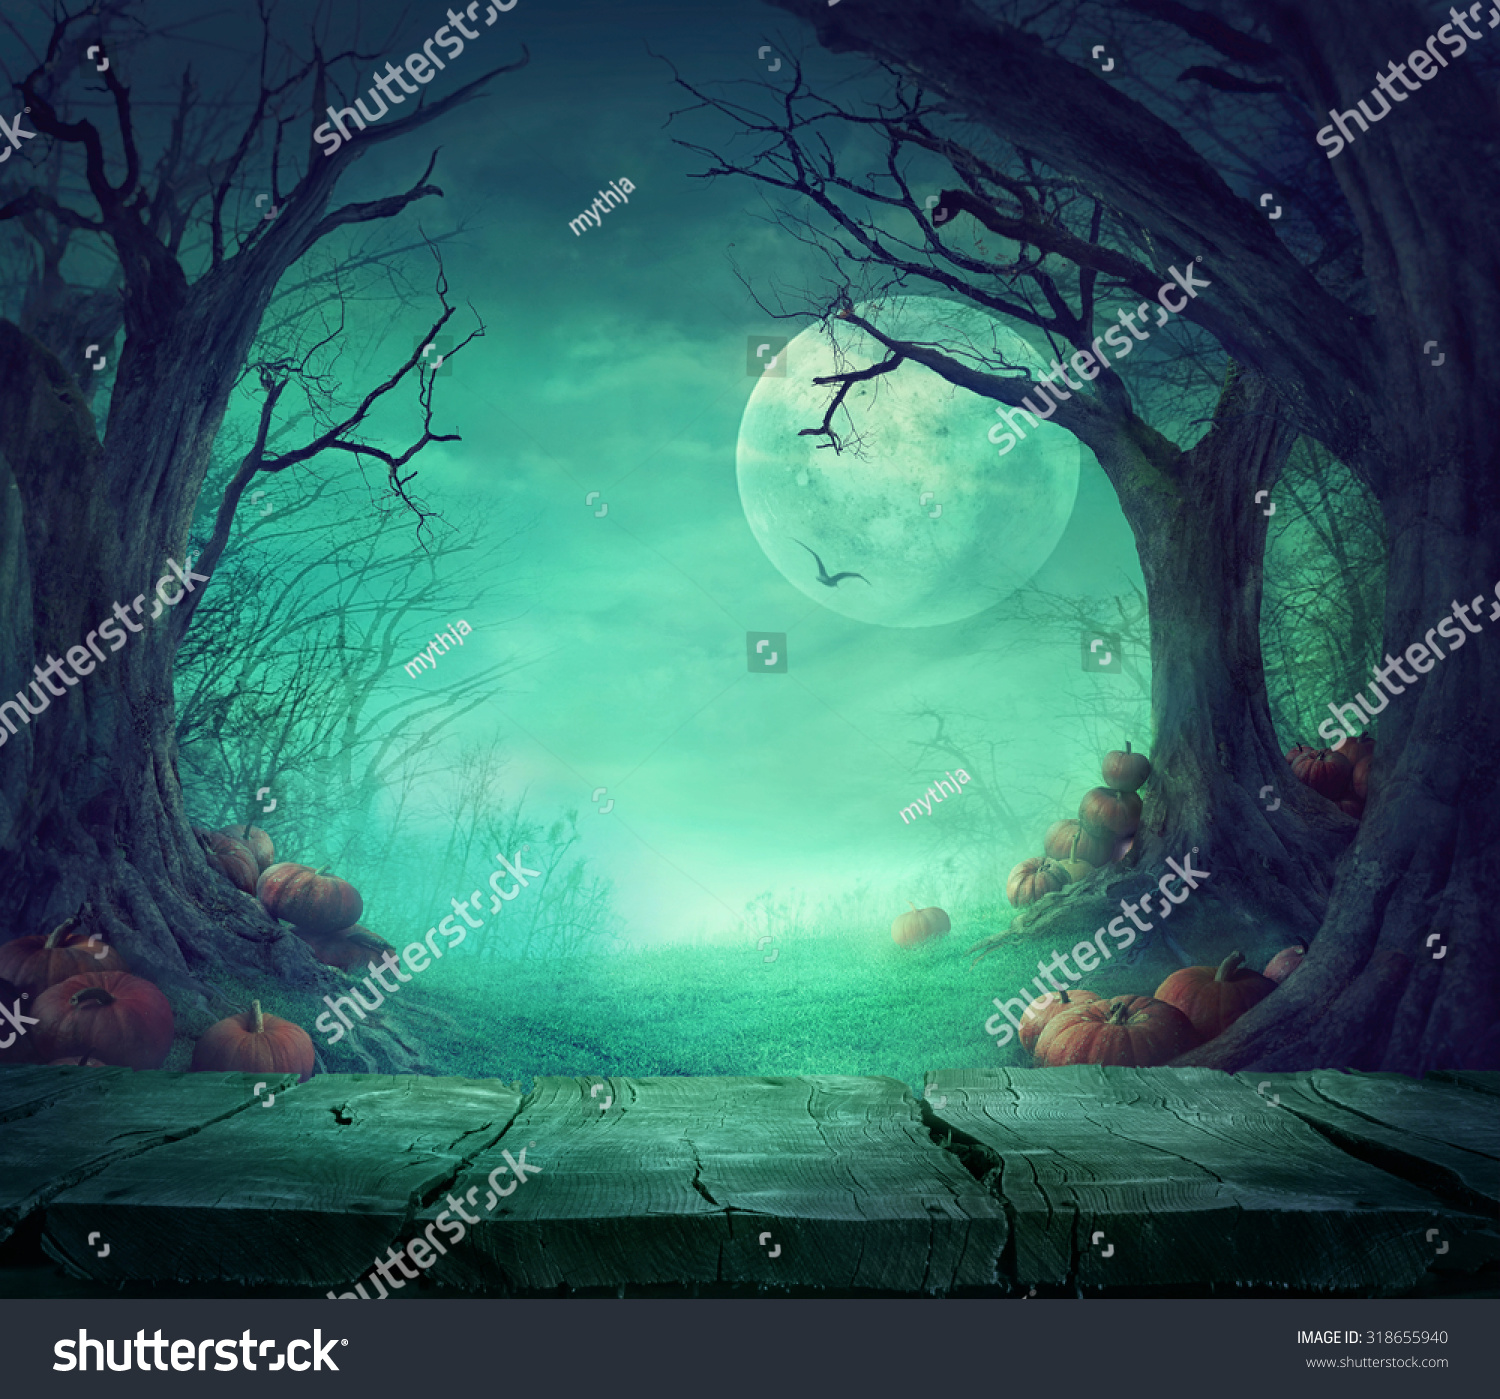 Scary woods photo edit - Halloween Background Spooky Forest With Dead Trees And